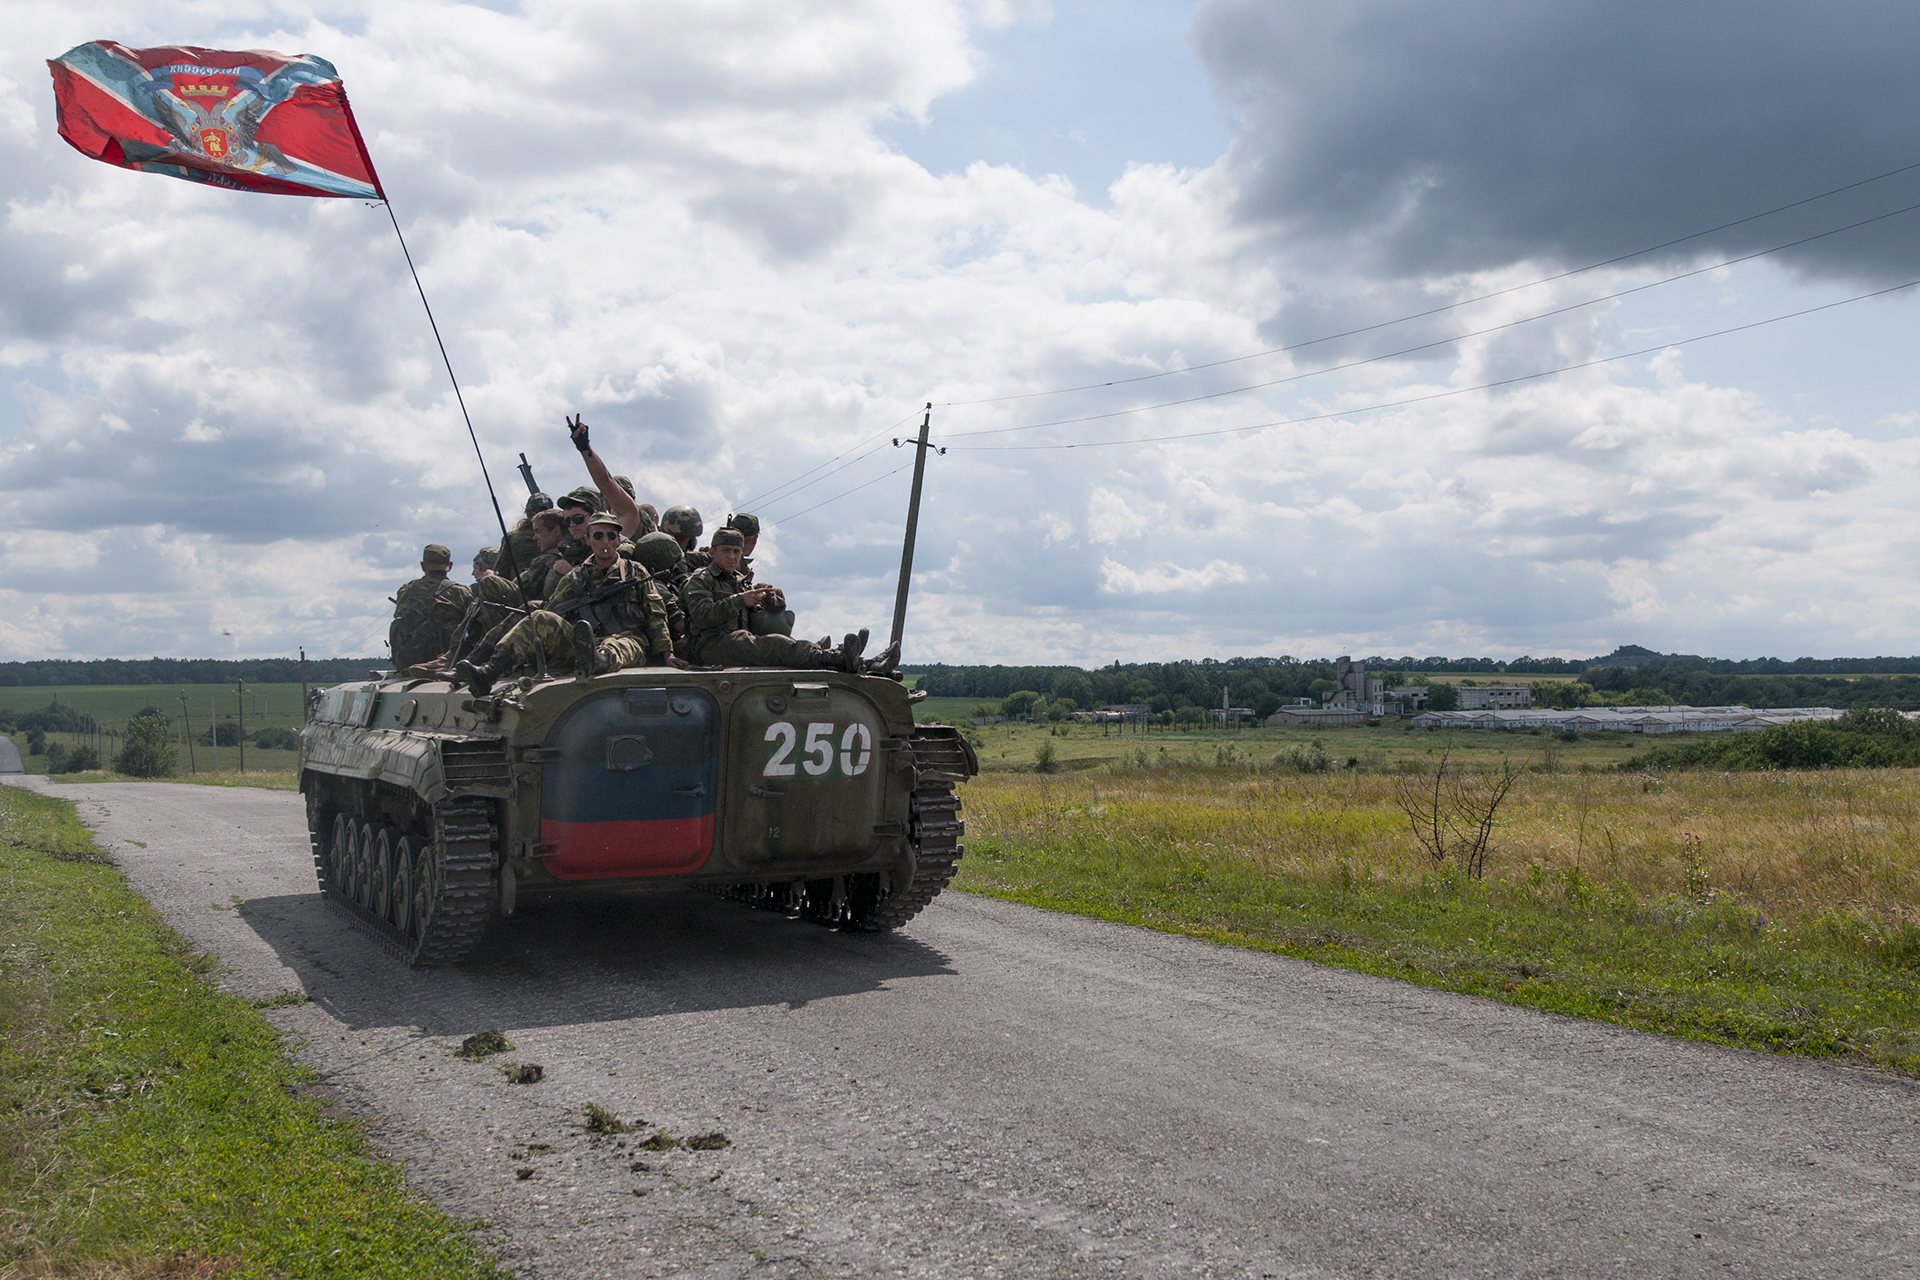 Russia-backed separatists sit atop an APC with a flag of the self-proclaimed Federal State of Novorossiya at the MH17 crash site a year after it was shot down